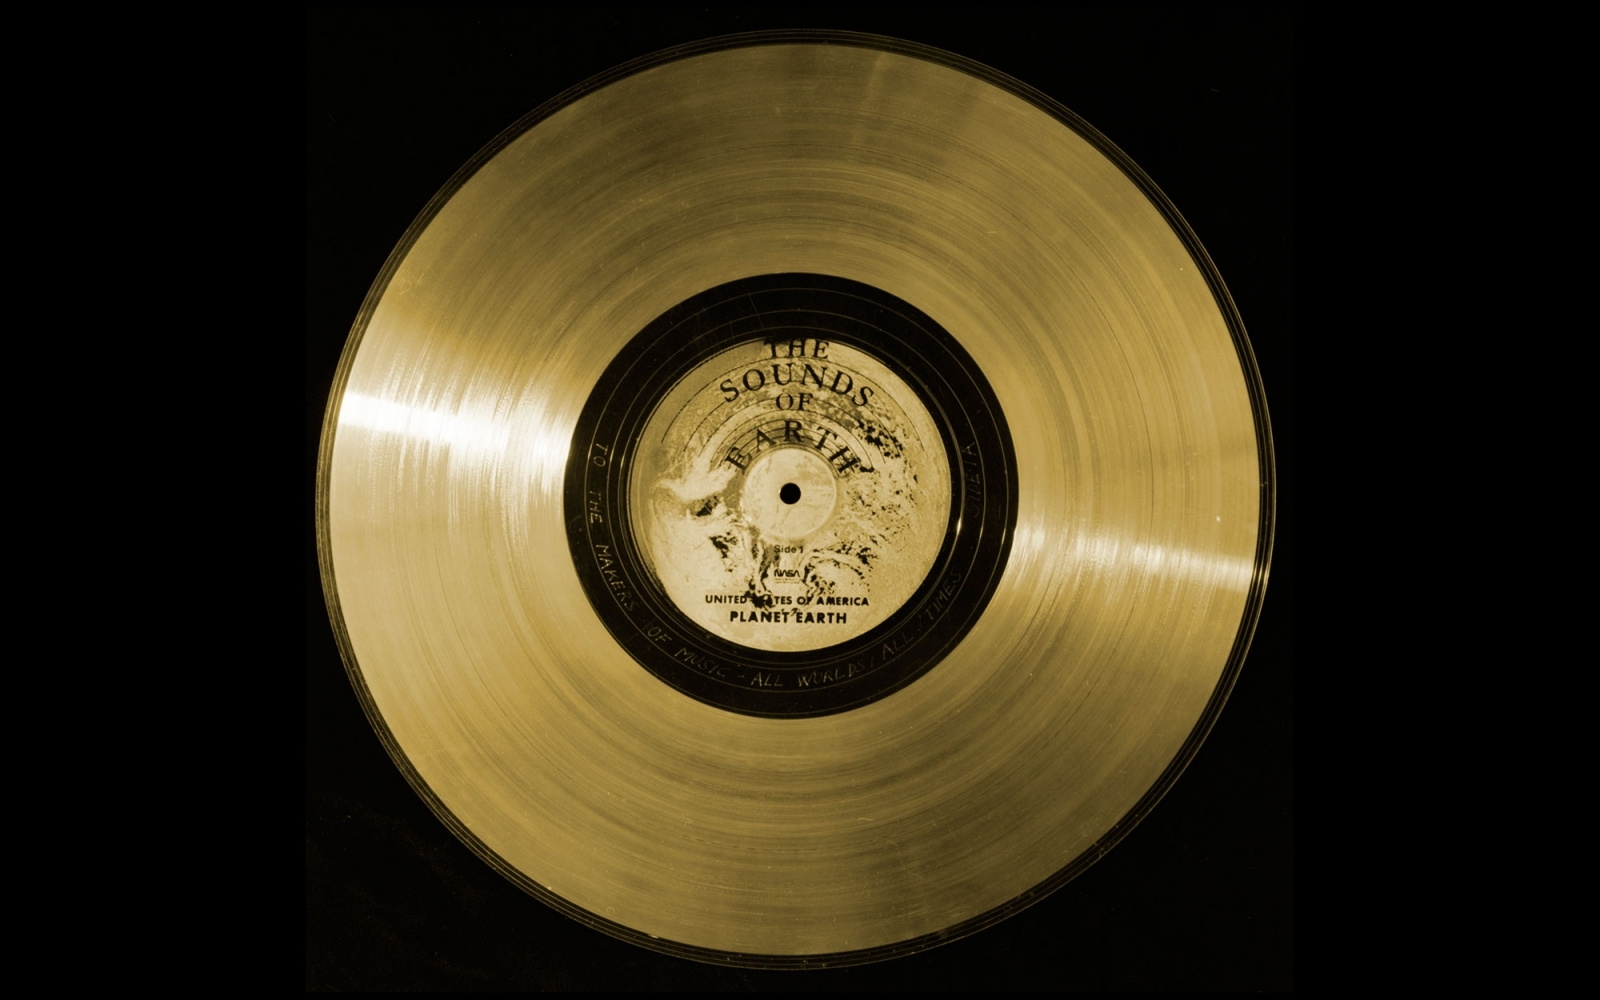 Golden Voyager record